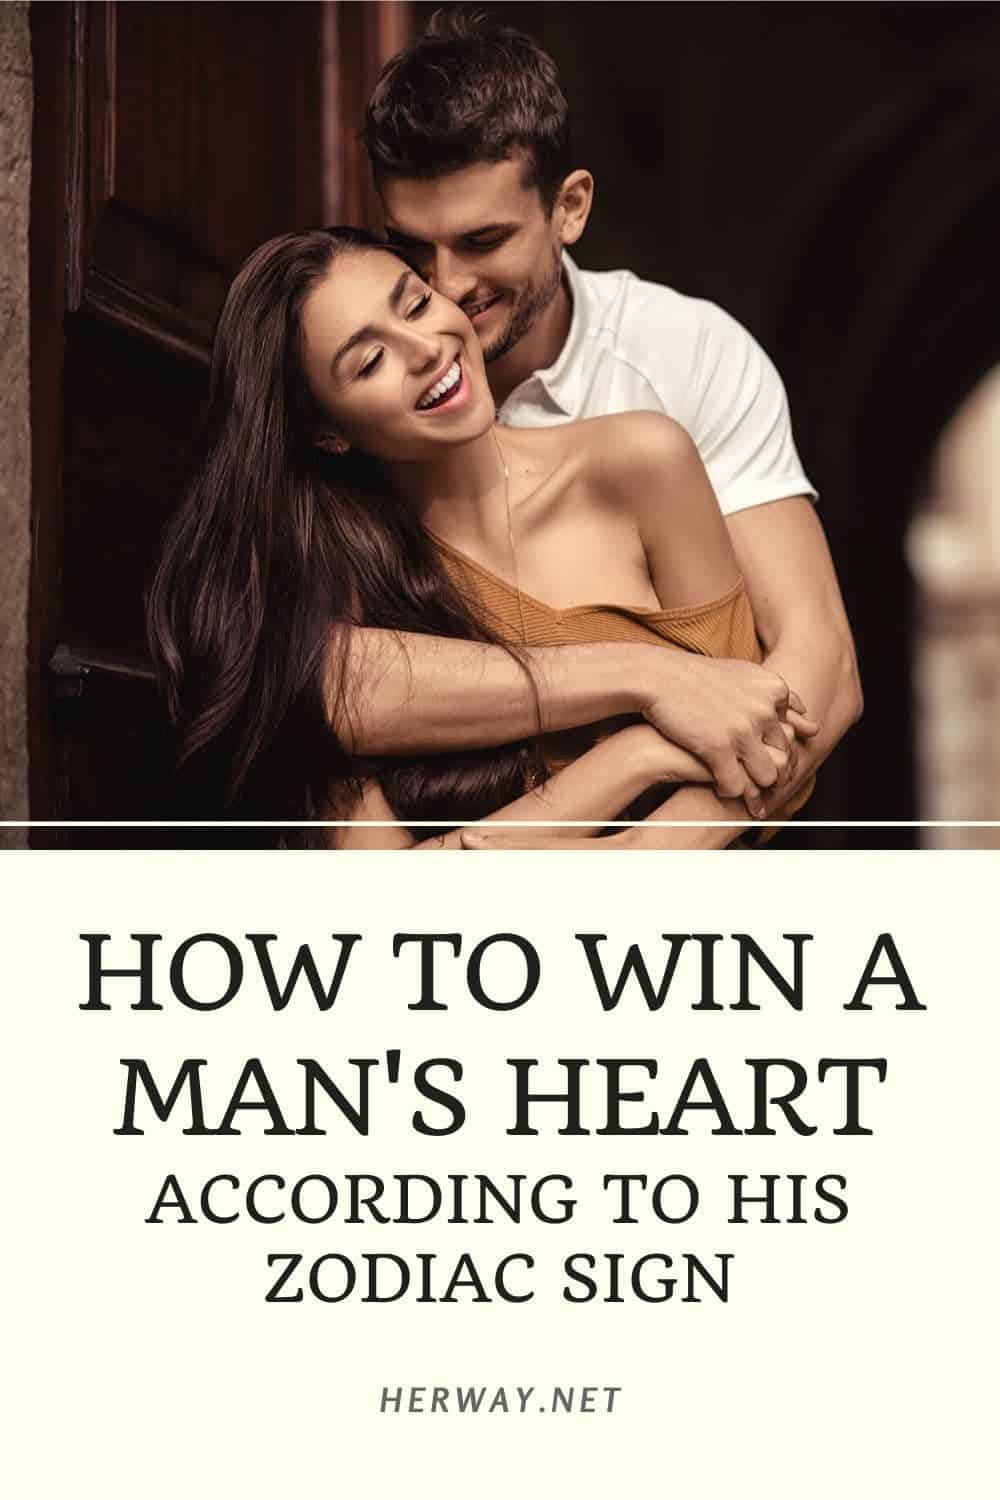 How To Win A Man's Heart According To His Zodiac Sign